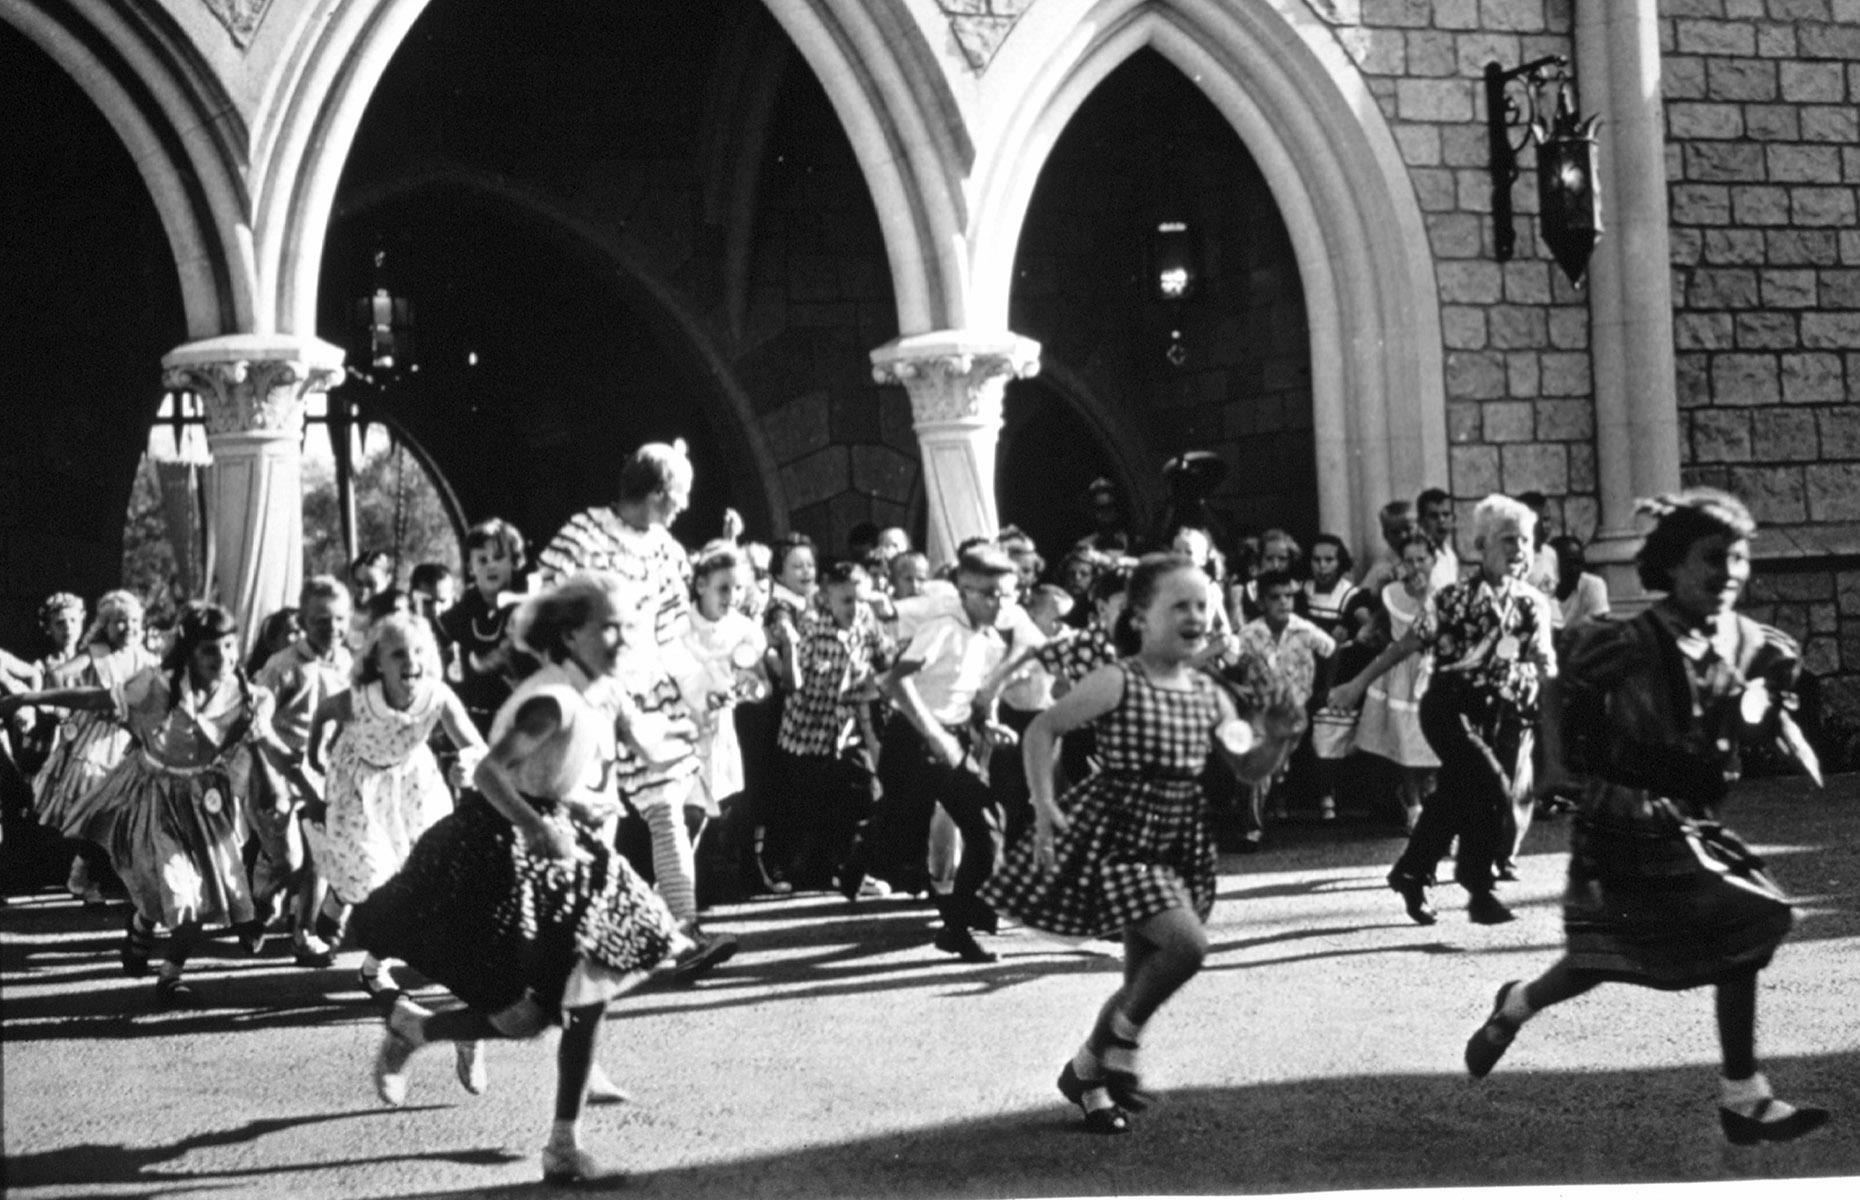 Slide 8 of 38: The park's youngest visitors could hardly wait to experience Disney's delights either. Here we see hundreds of excited children rush into the Fantasyland area of the park – the photo was taken immediately after the drawbridge entry was lowered on the opening day. The youngsters are headed straight for Sleeping Beauty Castle.